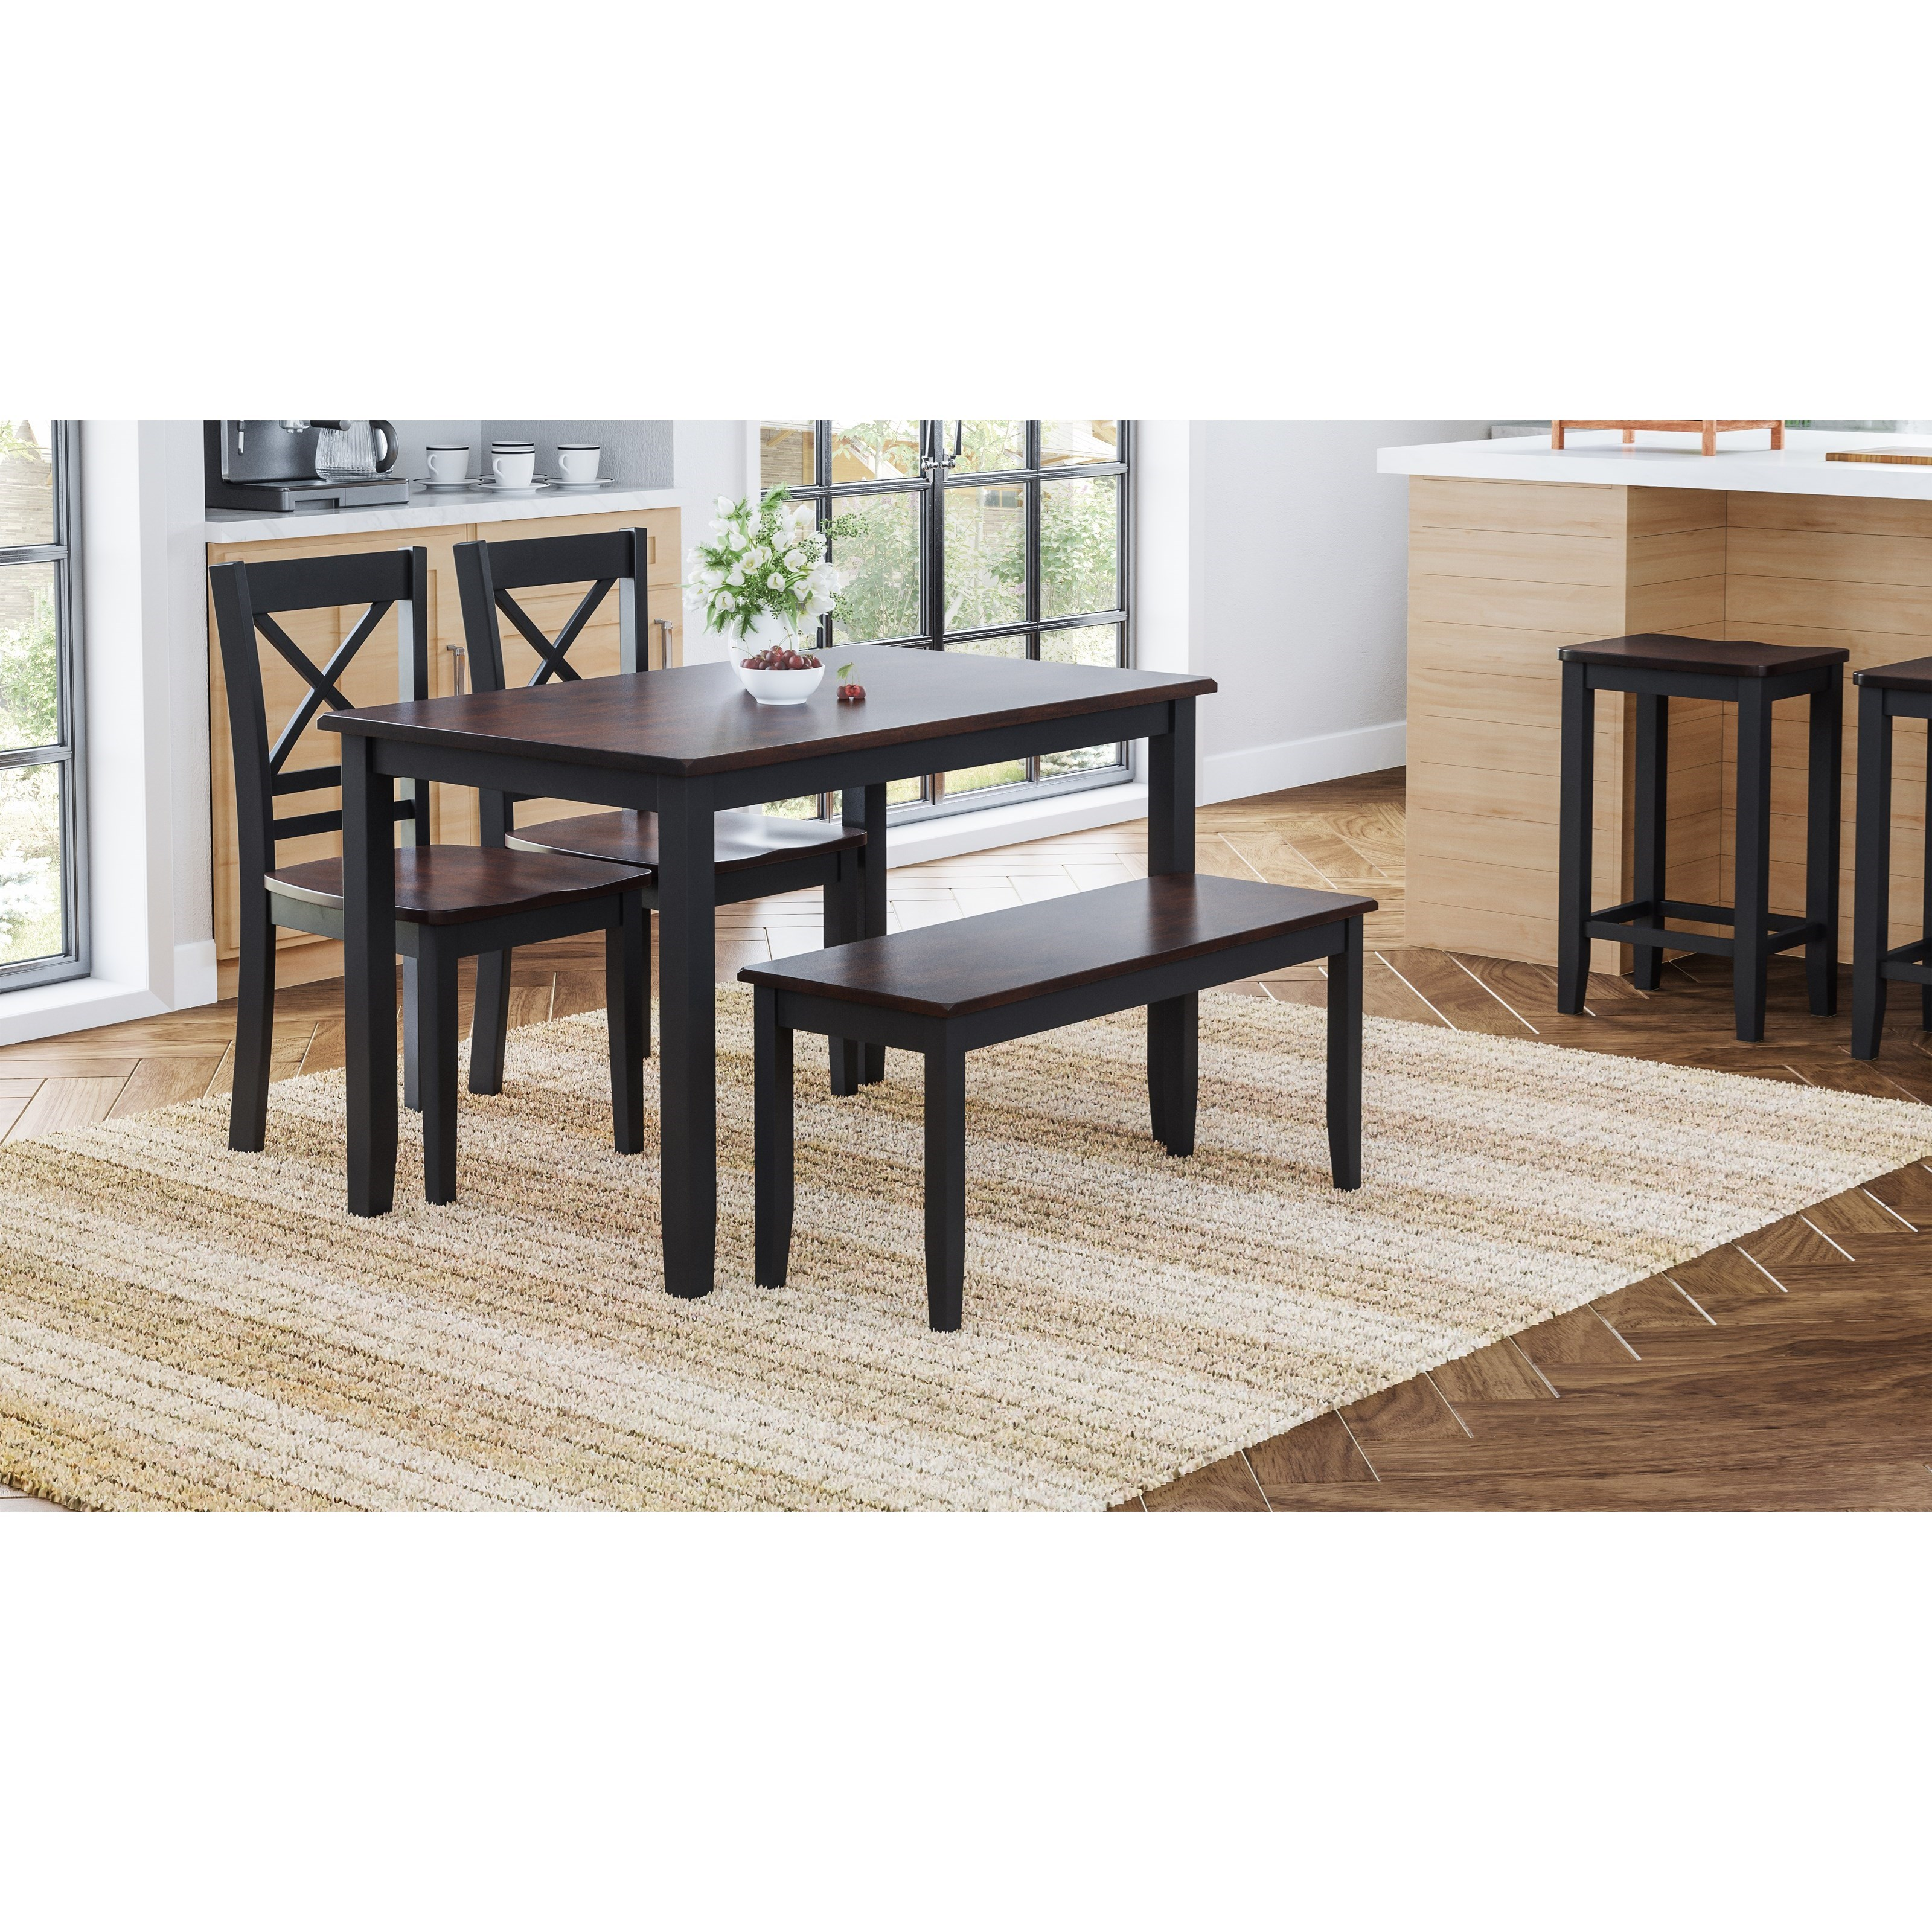 Asbury Park 4pk Dining by Jofran at Home Furnishings Direct